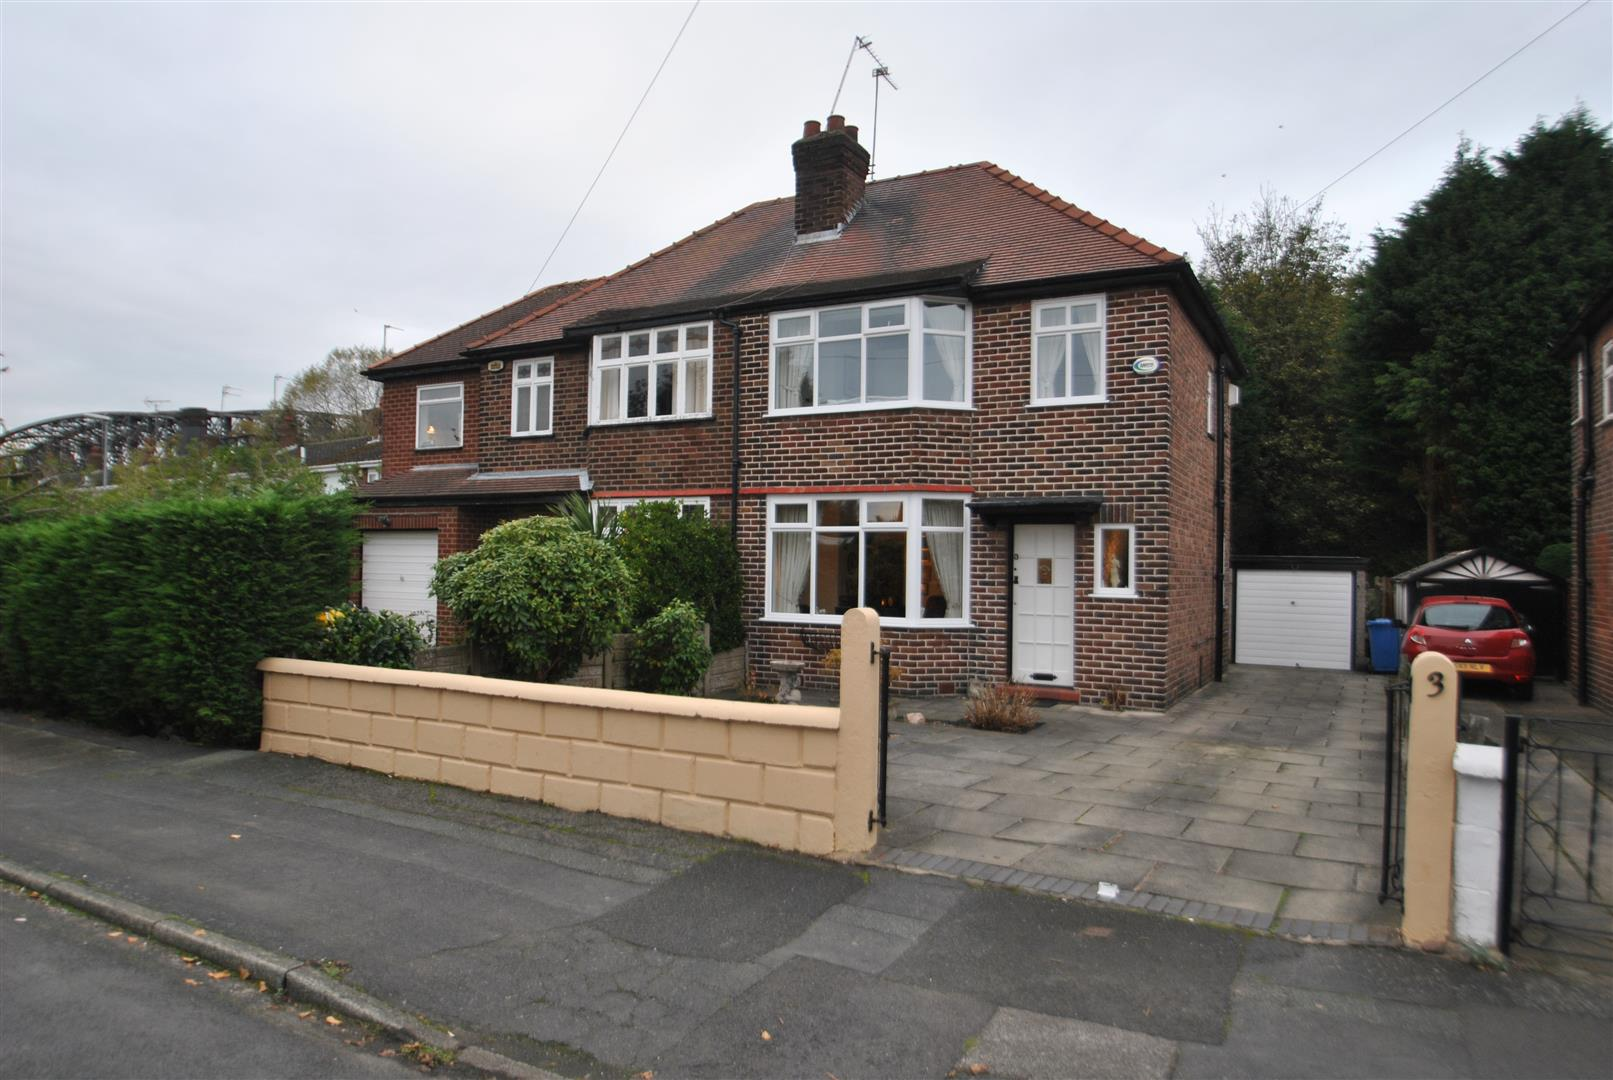 2 Bedrooms Semi Detached House for sale in Springfield Avenue, GRAPPENHALL, Warrington, WA4